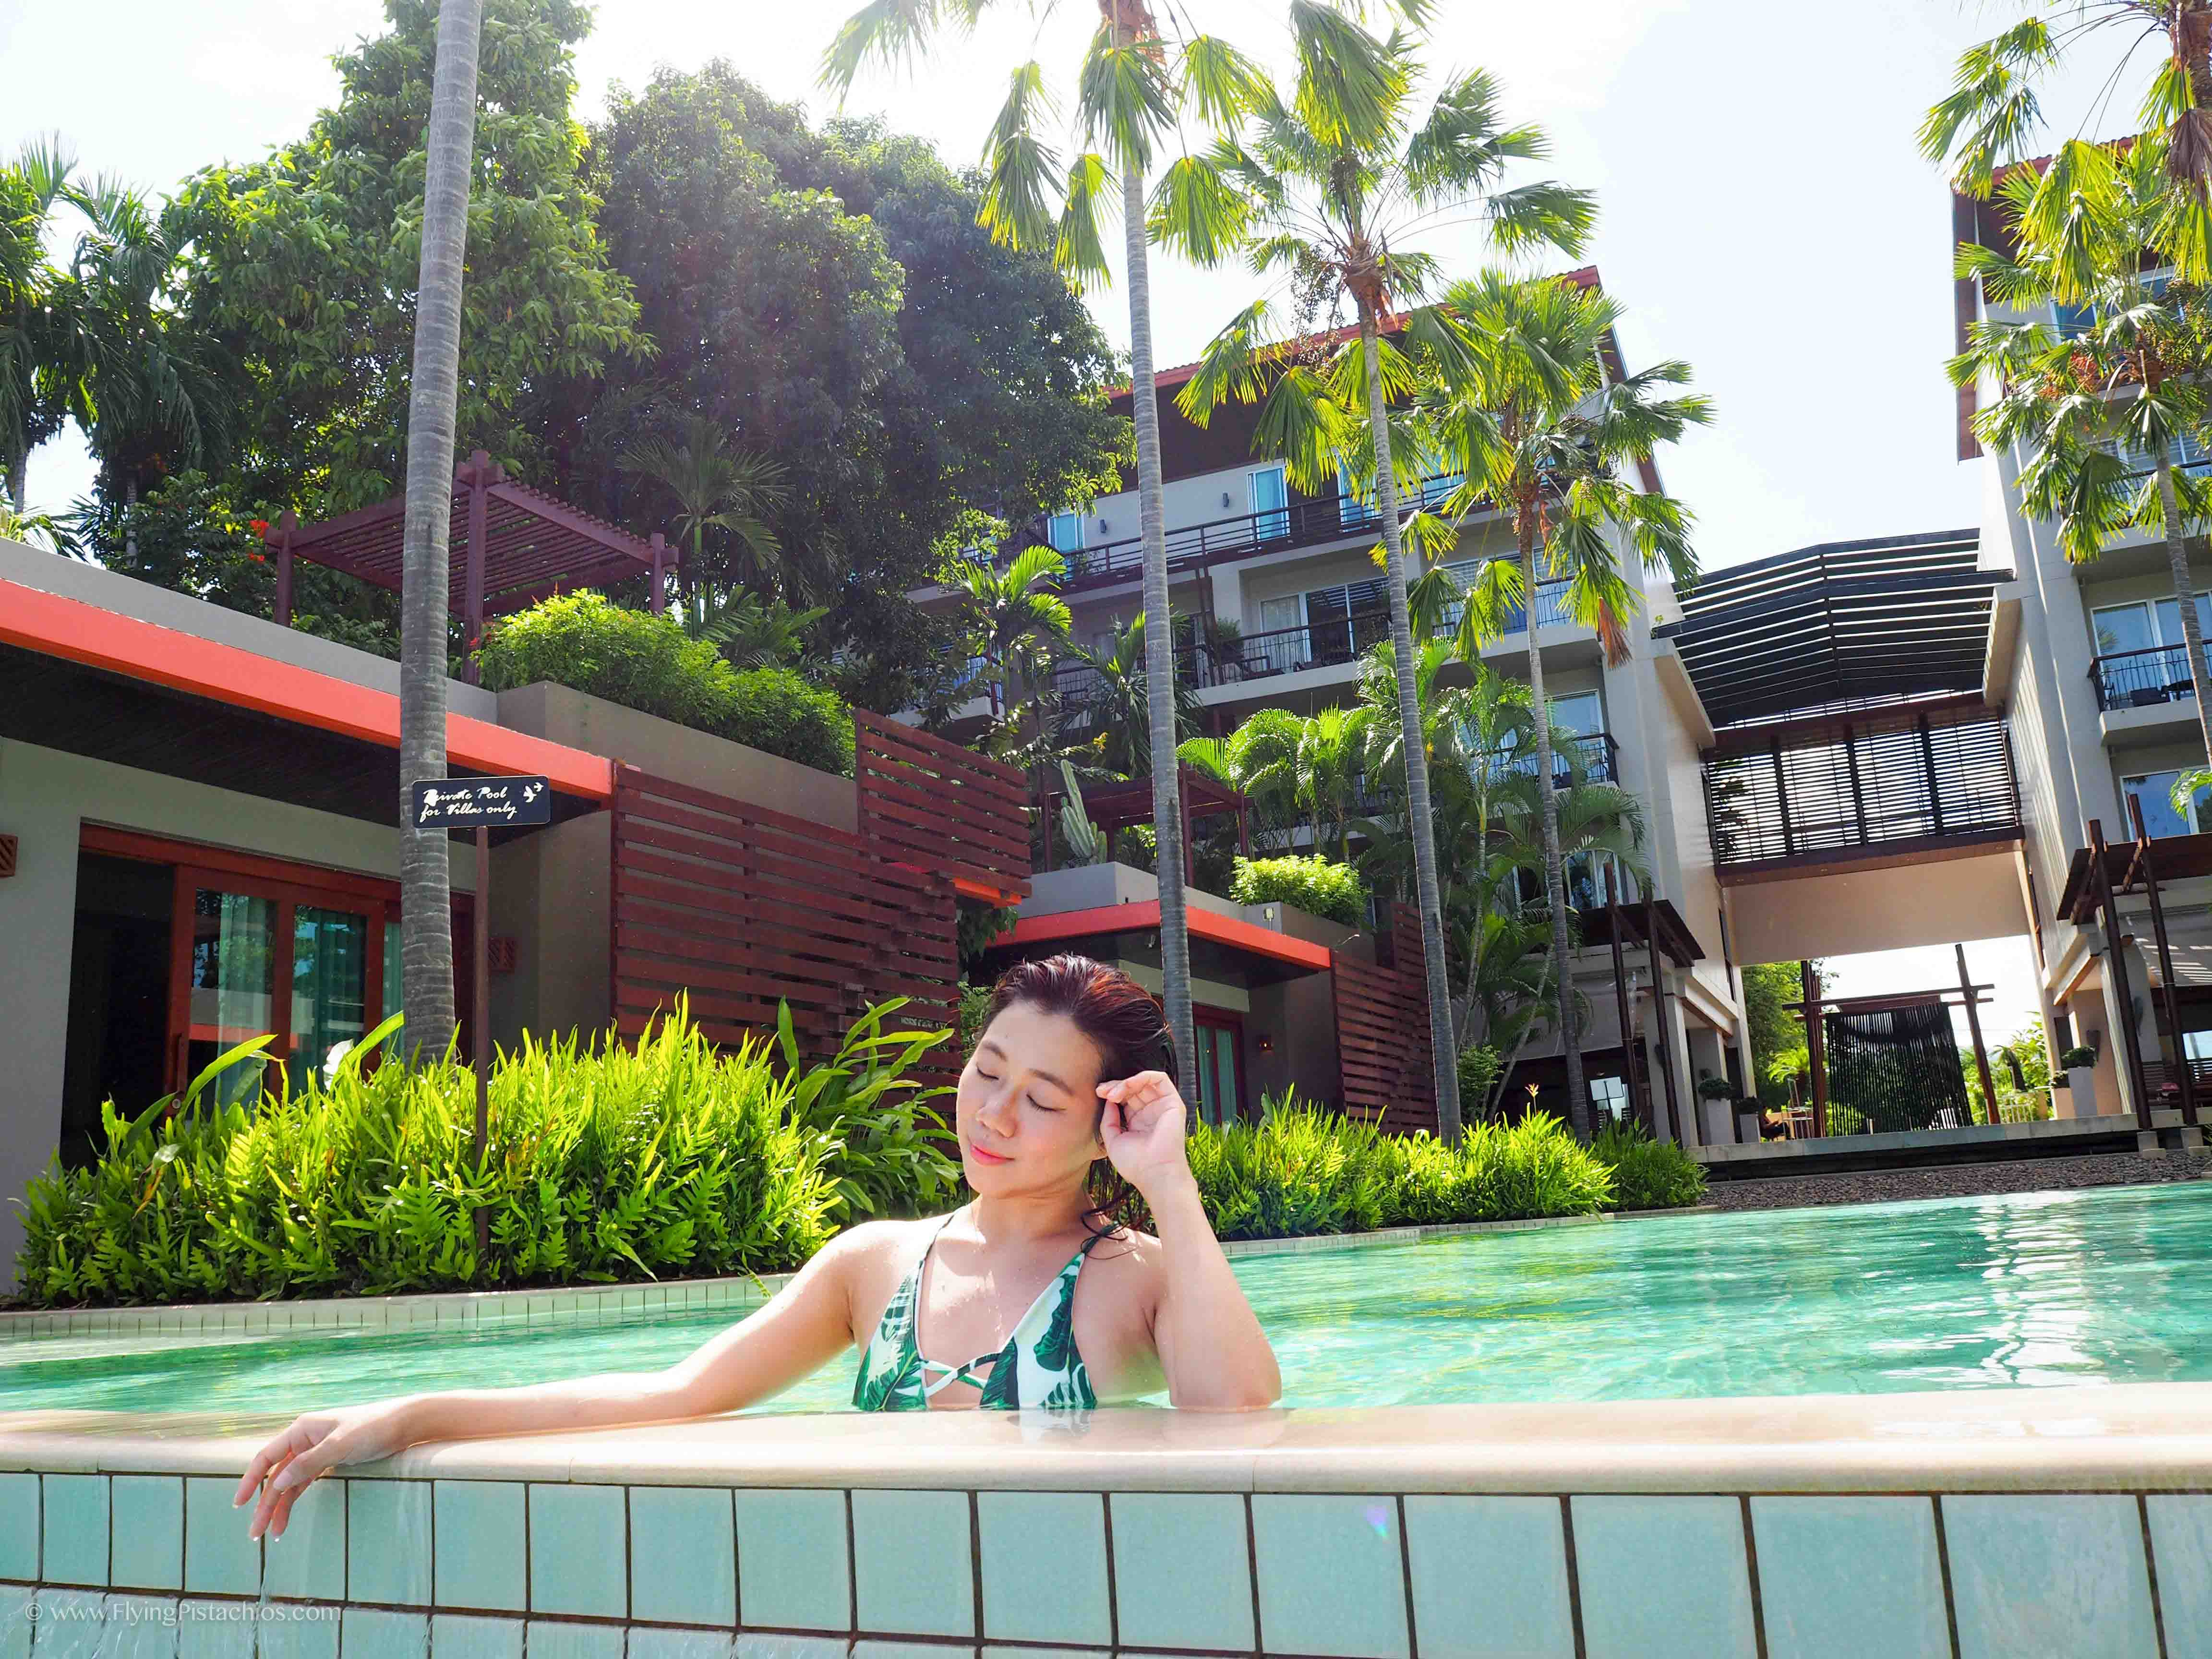 Places to stay in Hua Hin